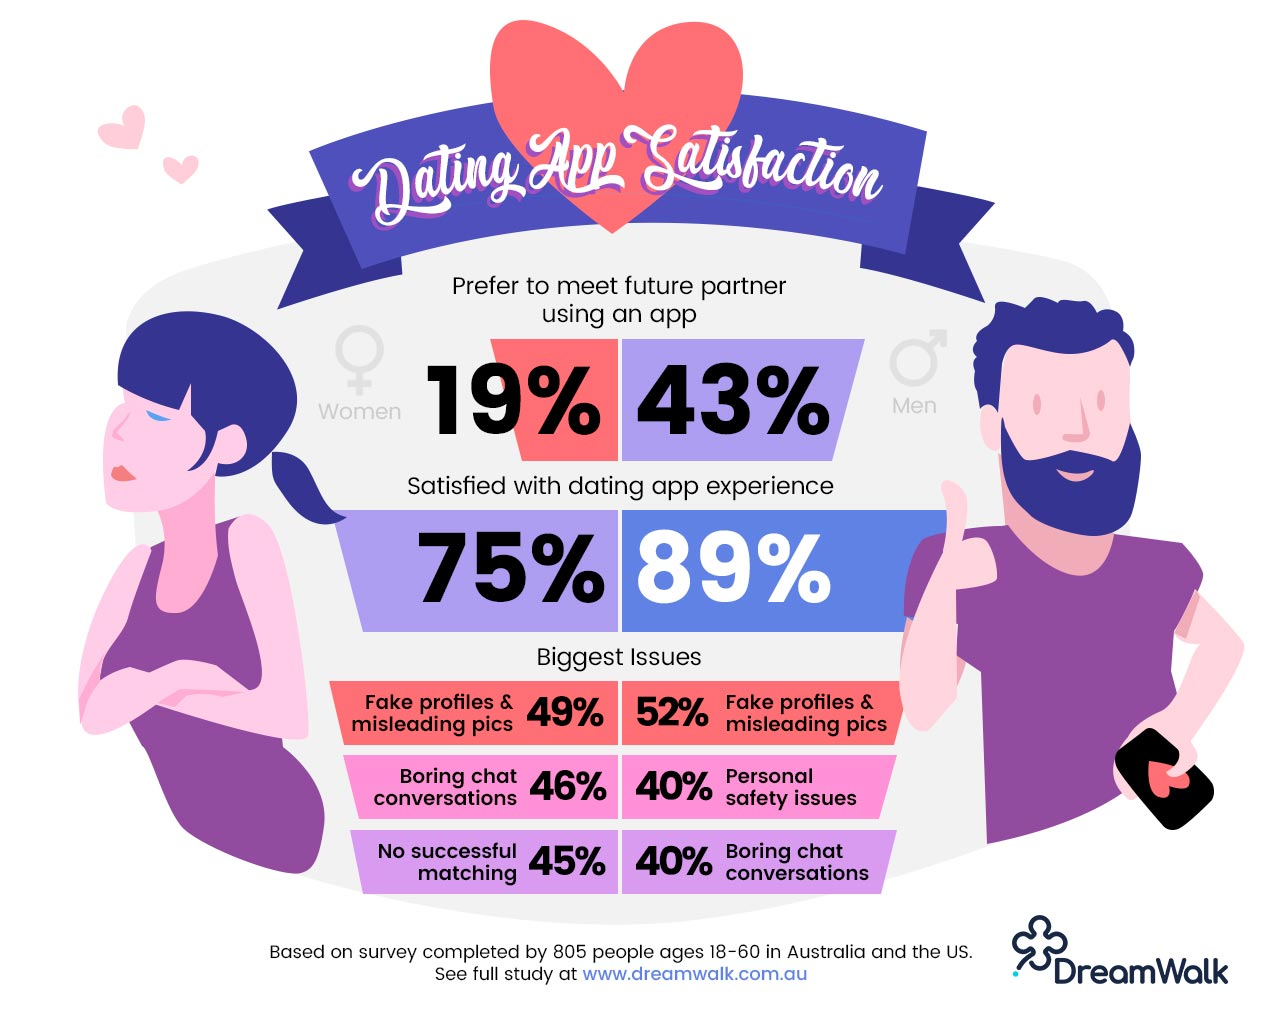 Dating App Satisfaction - DreamWalk app developers in Australia